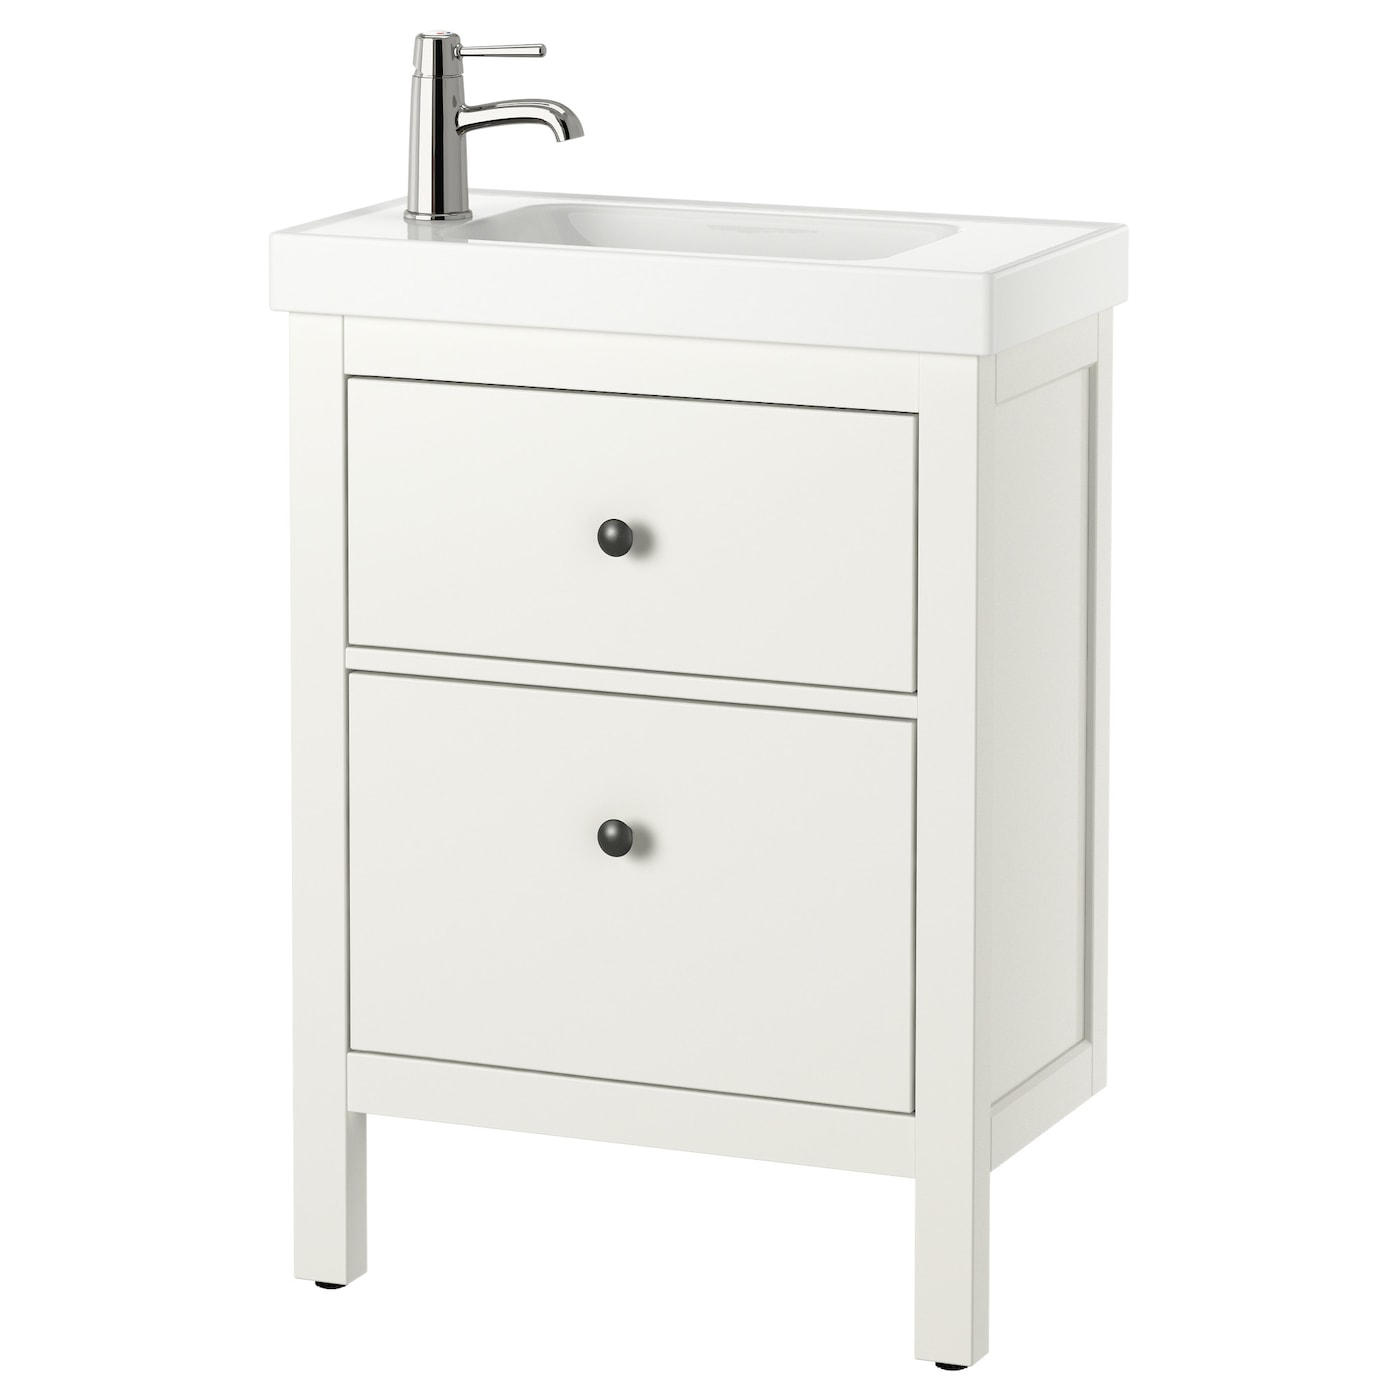 Hemnes hagaviken wash stand with 2 drawers white 60x34x90 for Evier salle de bain ikea